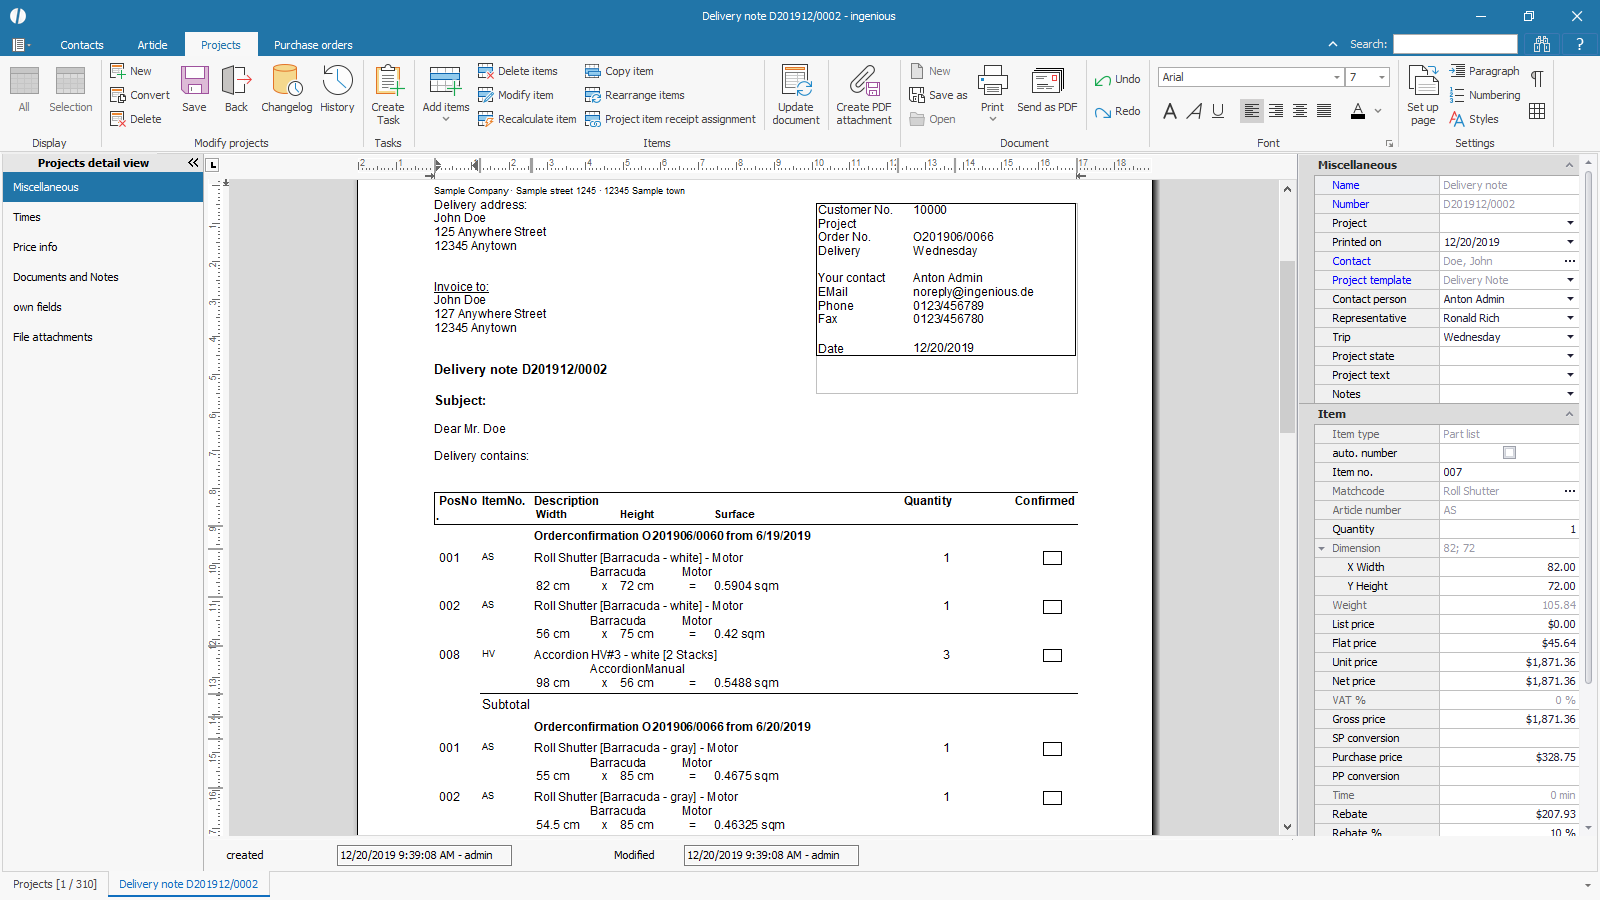 ingenious software projects detailview collected documents